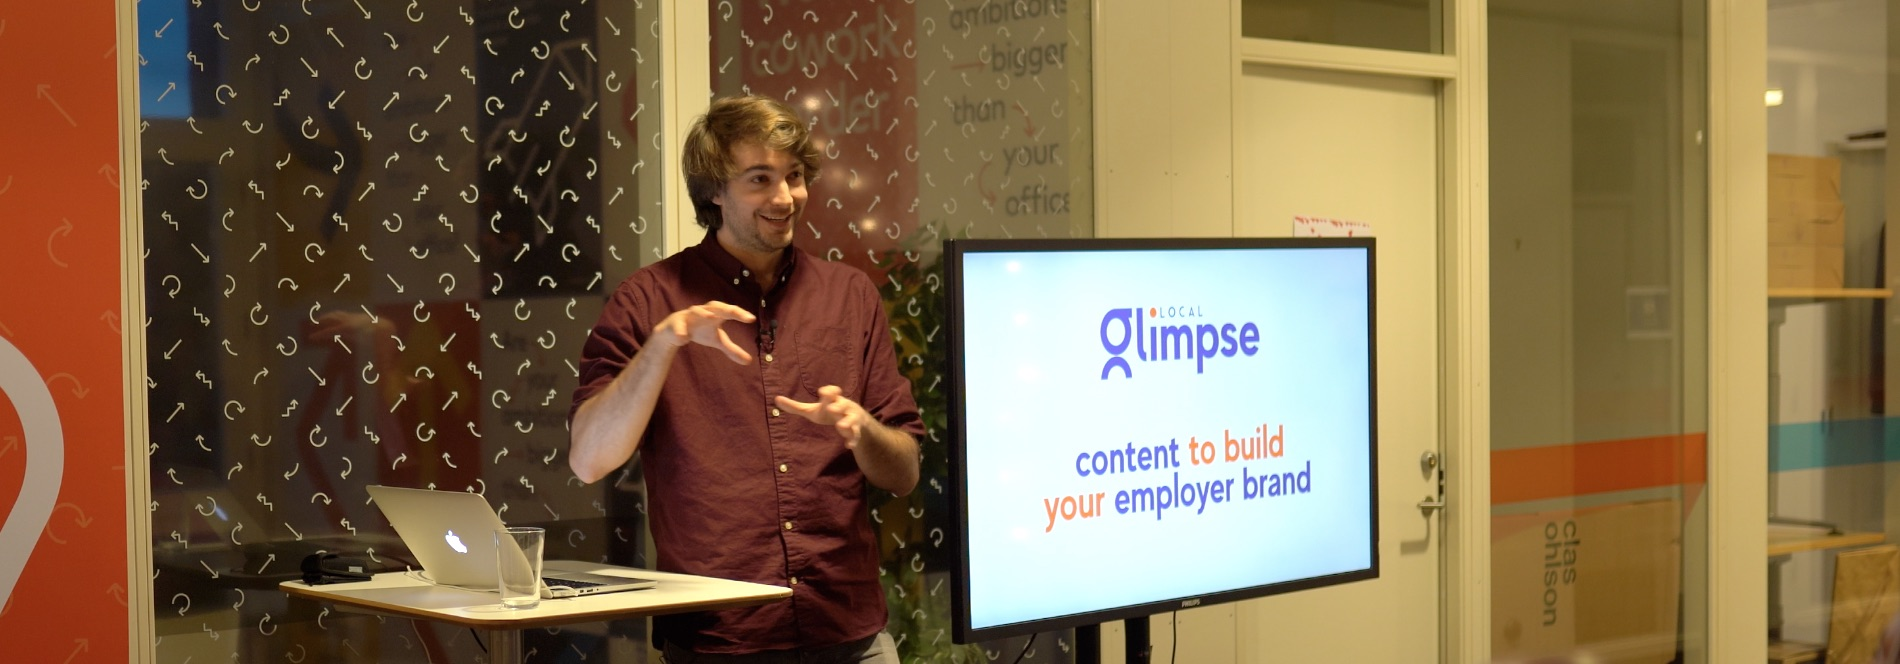 Benjamin talking at an employer branding event about content